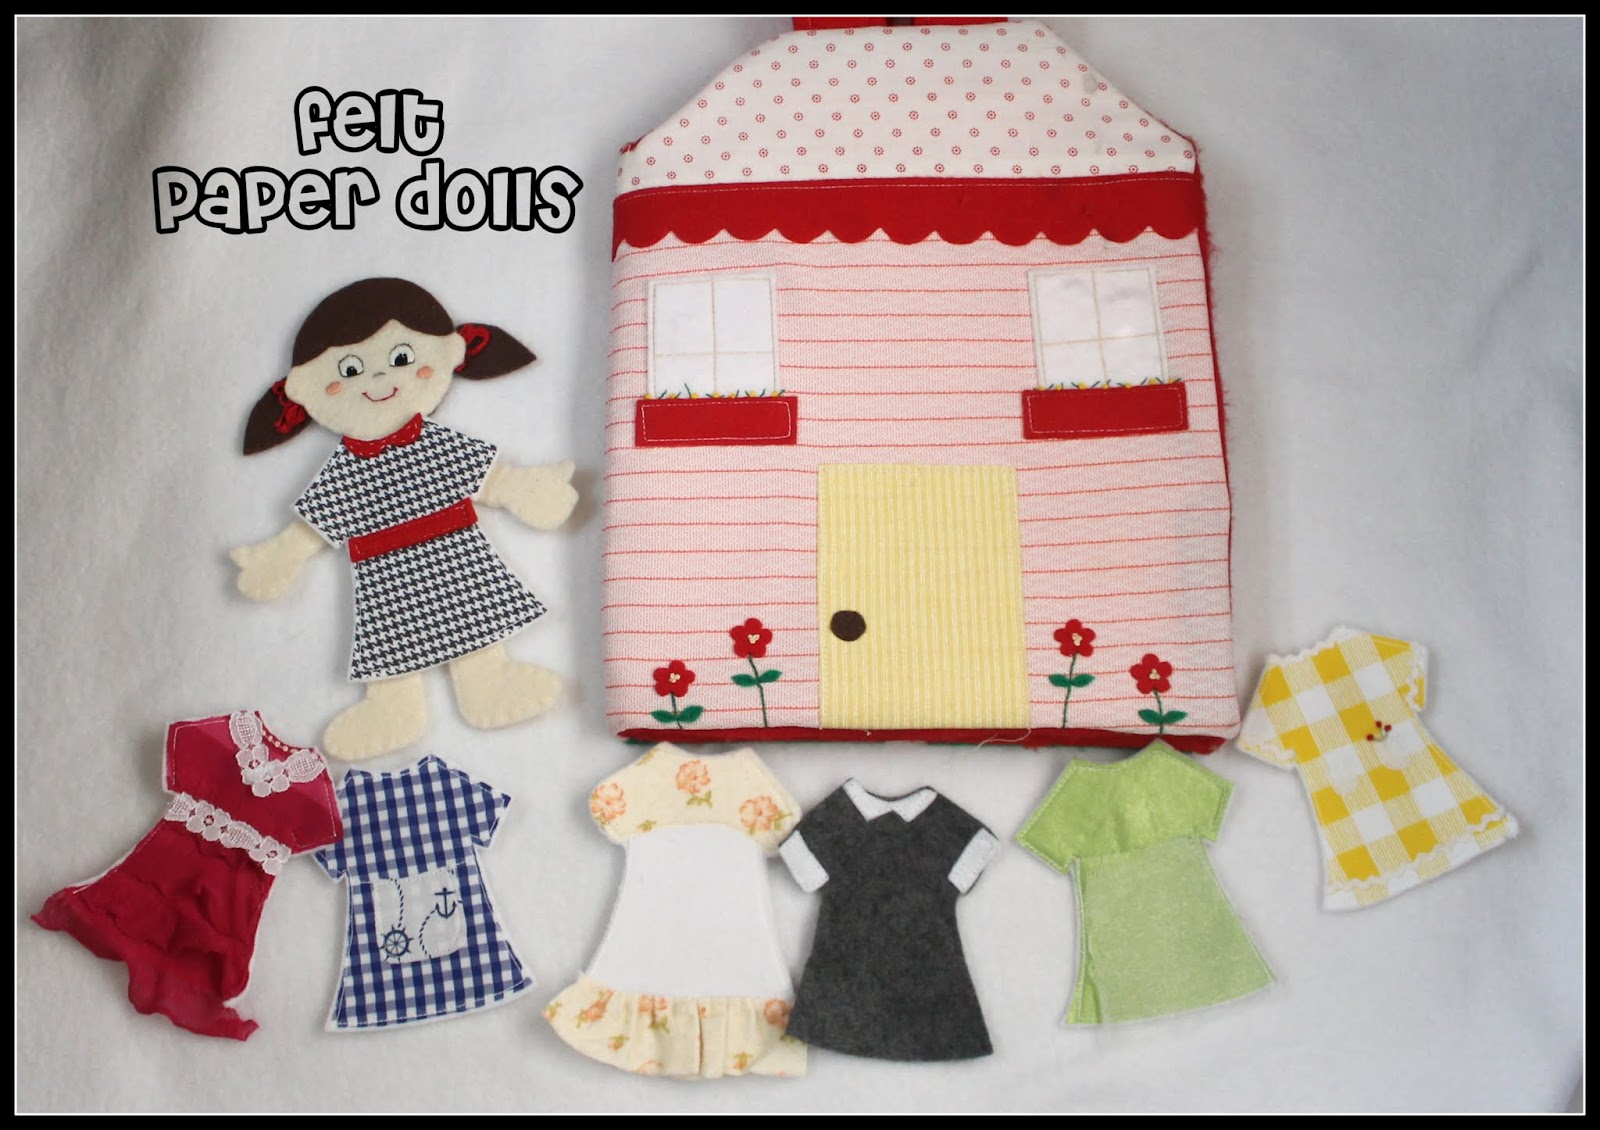 felt dress up doll template - felt paper dolls peek a boo pages patterns fabric more